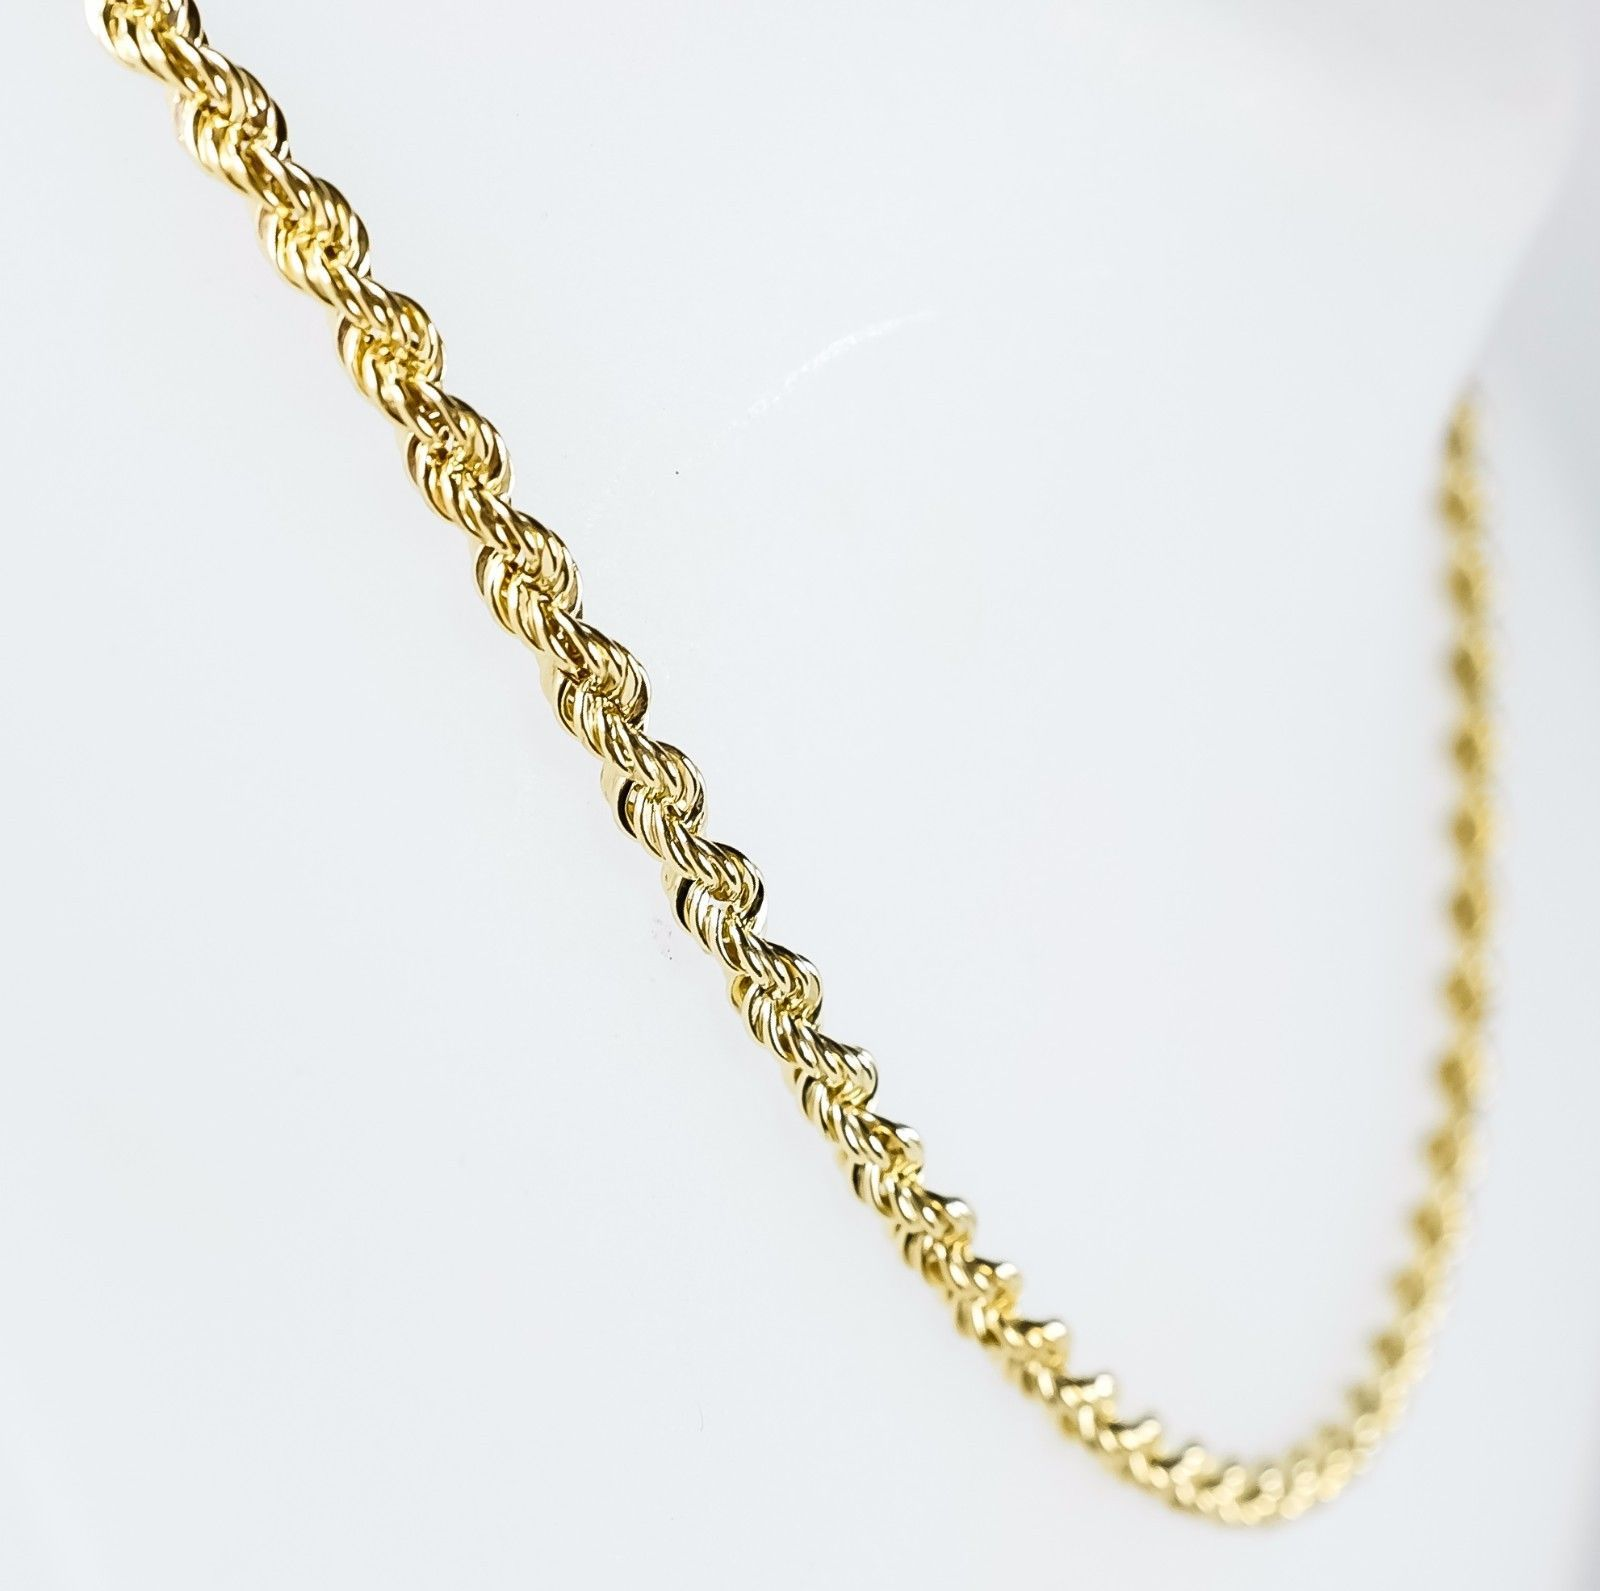 14kt Yellow Gold Solid Rope Chain 1 5 Mm Width 16 0 Inch Long 3 2 Grams By Rg D 10kt Yellowgold G Gold Chains For Men Gold Chains White Gold Chains